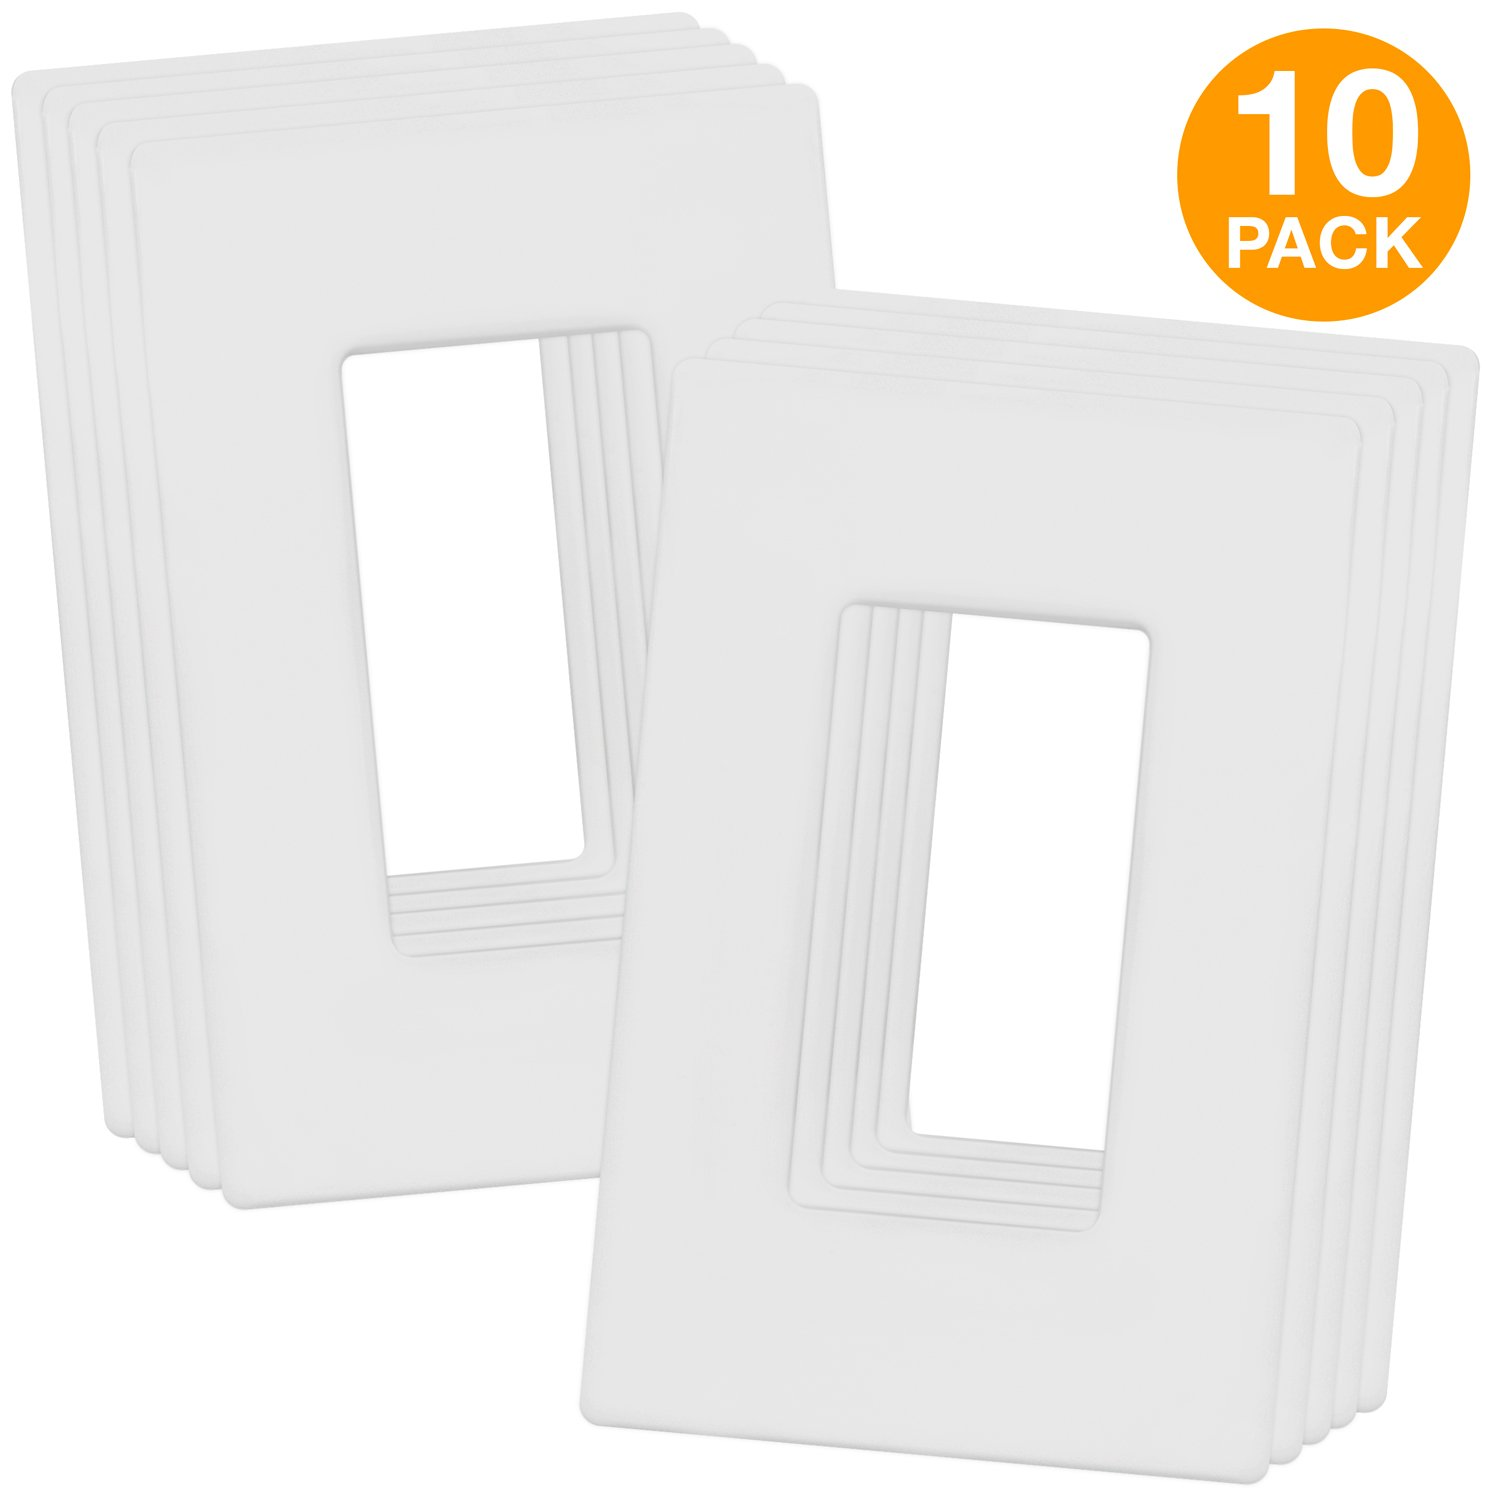 ENERLITES Screwless Decorator Wall Plates Child Safe Outlet Covers, Size 1-Gang 4.68'' H x 2.93'' L, Polycarbonate Thermoplastic, SI8831-W-10PCS, White (10 Pack) by ENERLITES